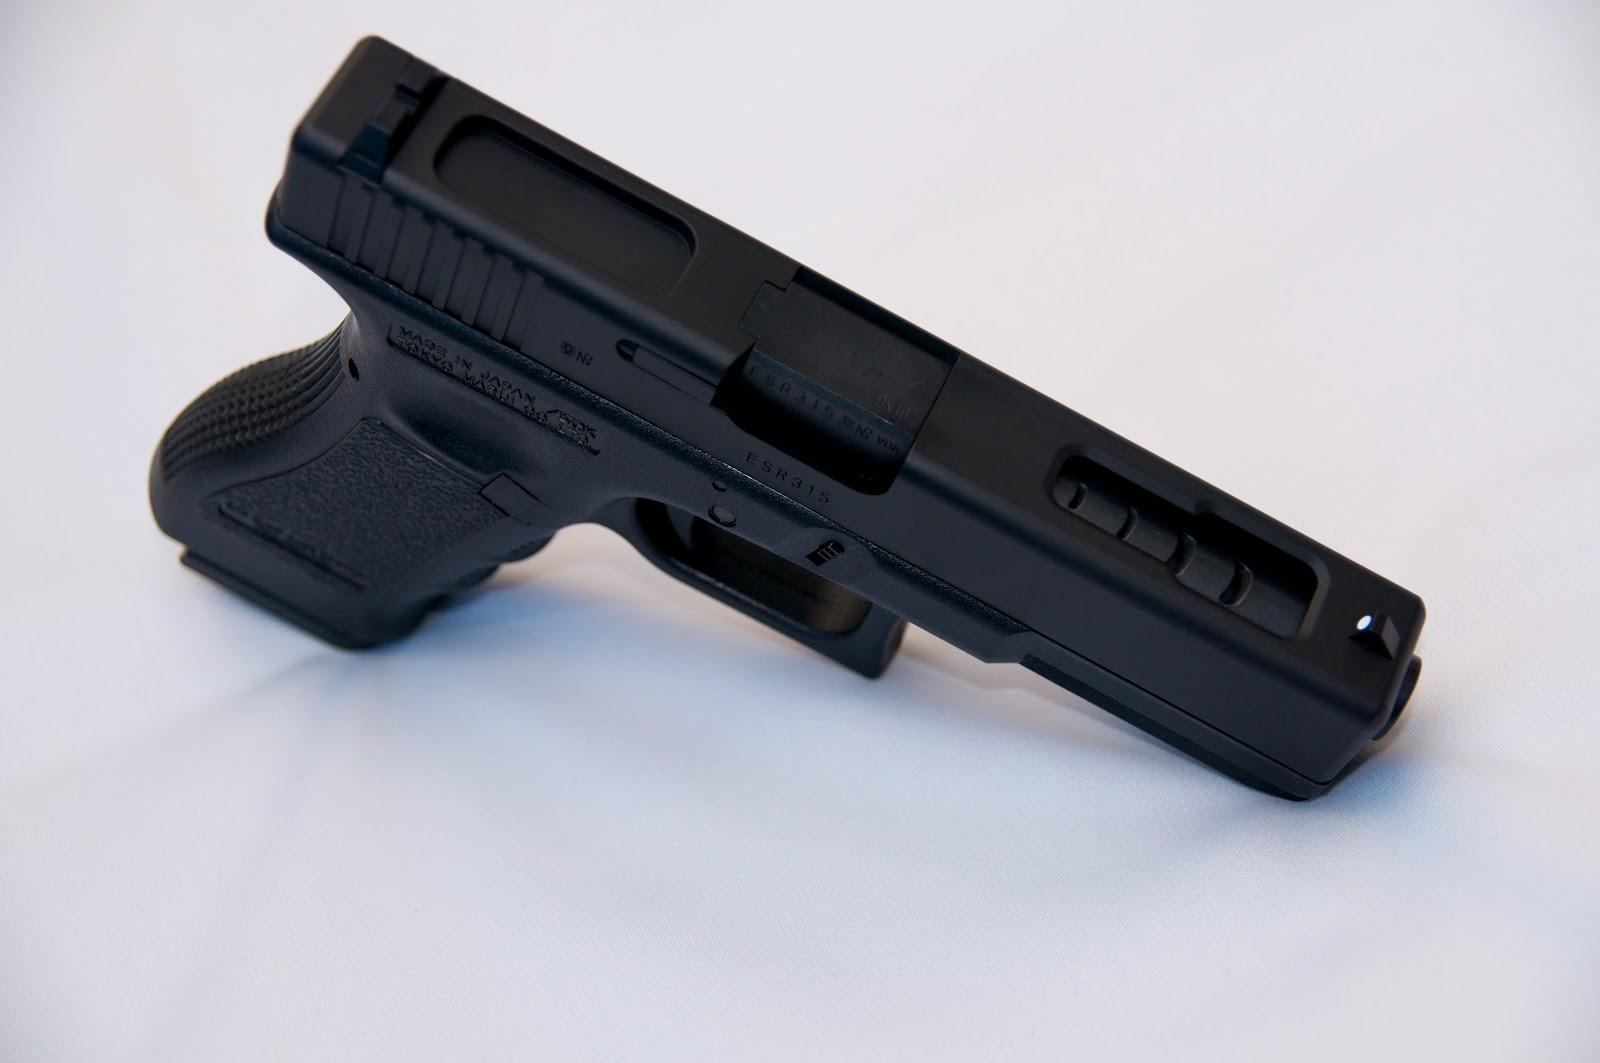 Wired C A T S : Glock 18C